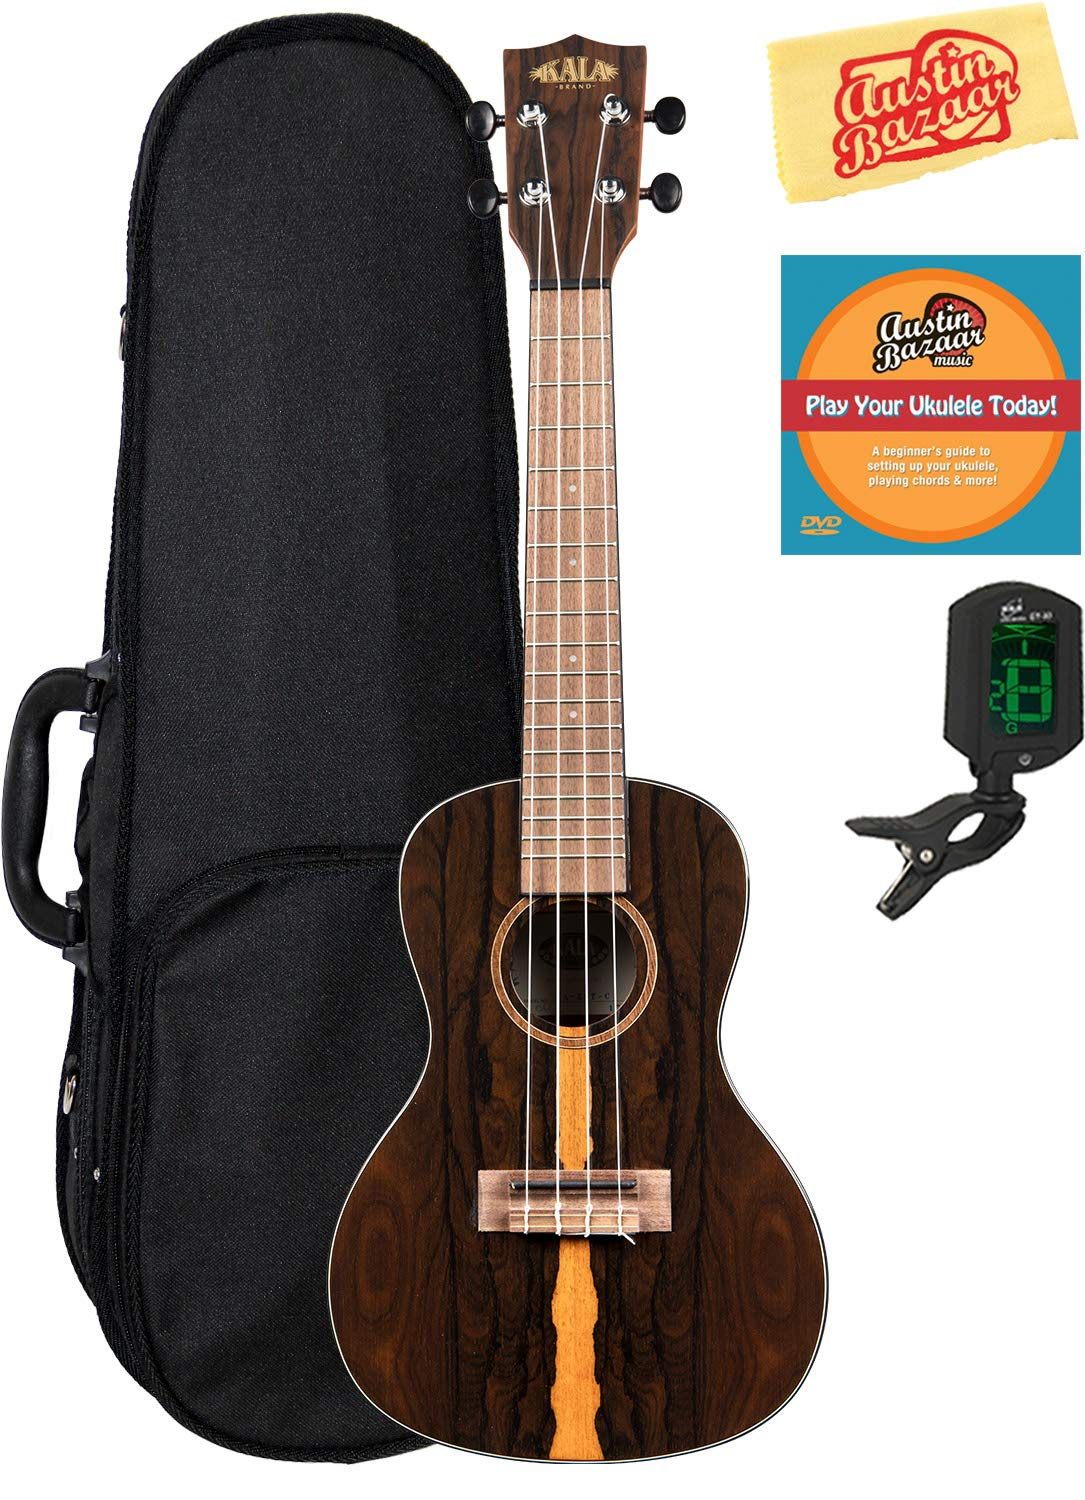 Kala KA-ZCT-C Ziricote Concert Ukulele Bundle with Hard Case, Tuner, Austin Bazaar Instructional DVD, and Polishing Cloth